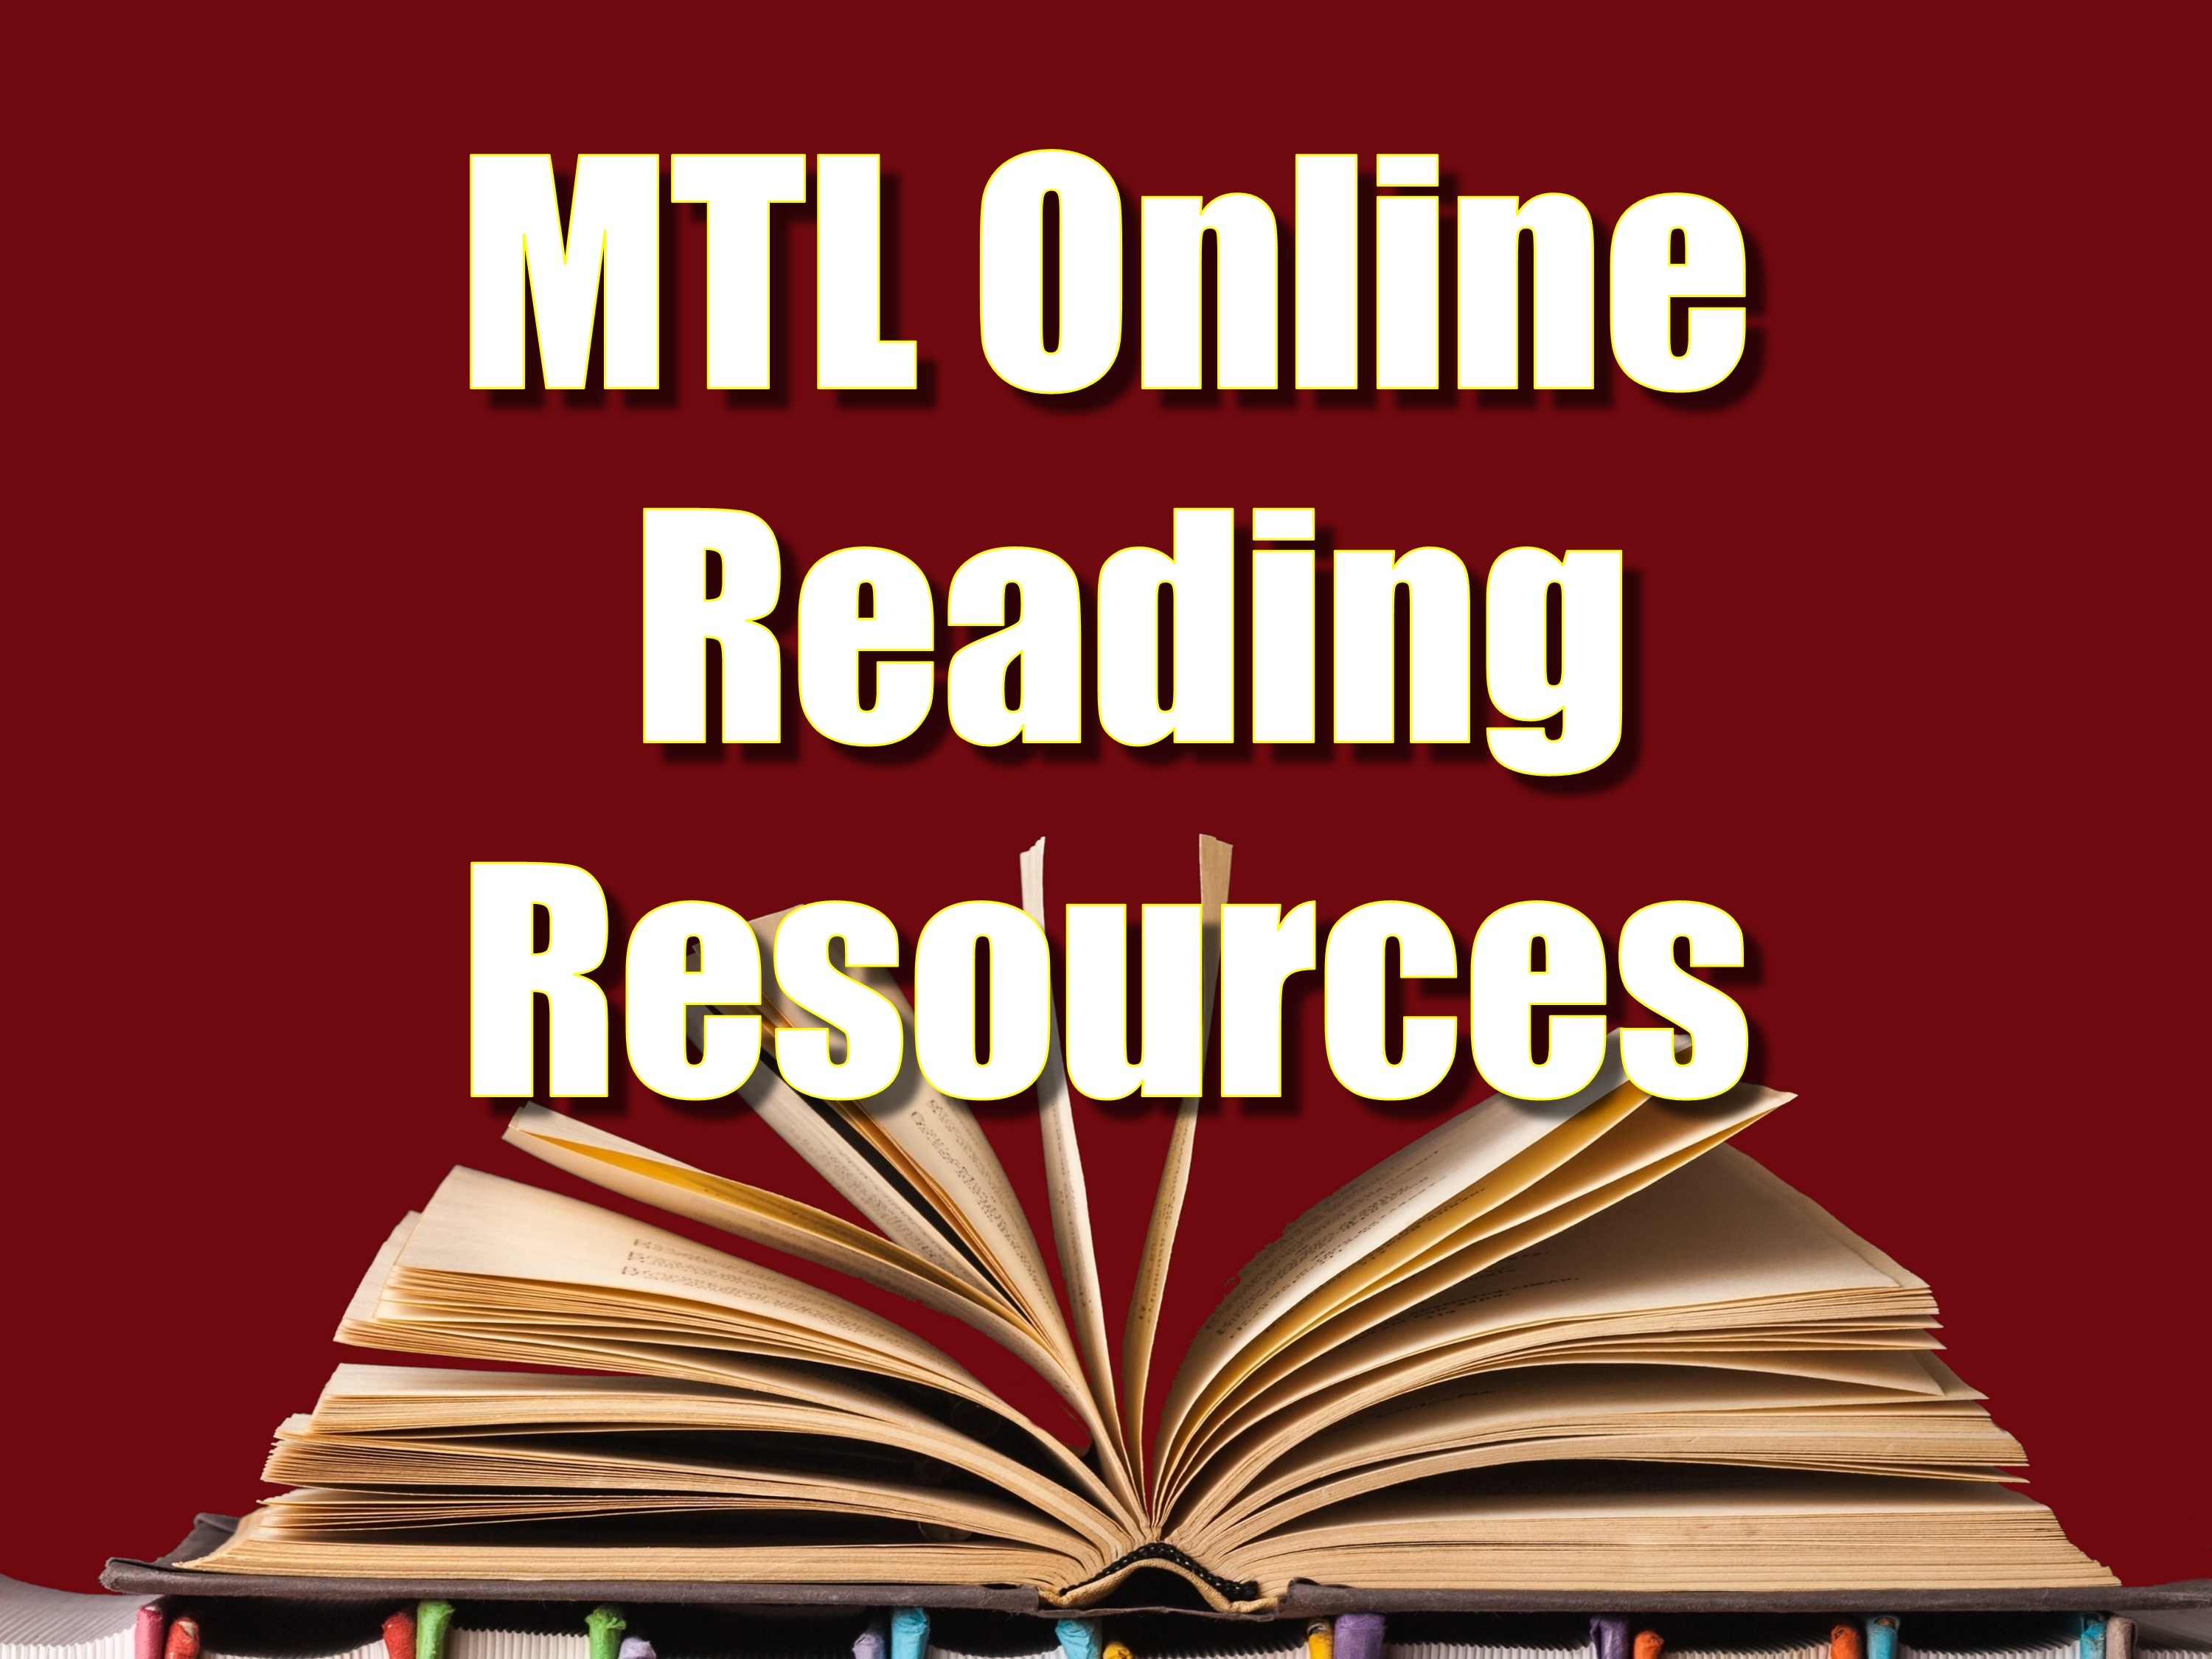 MTL Online Reading Resources